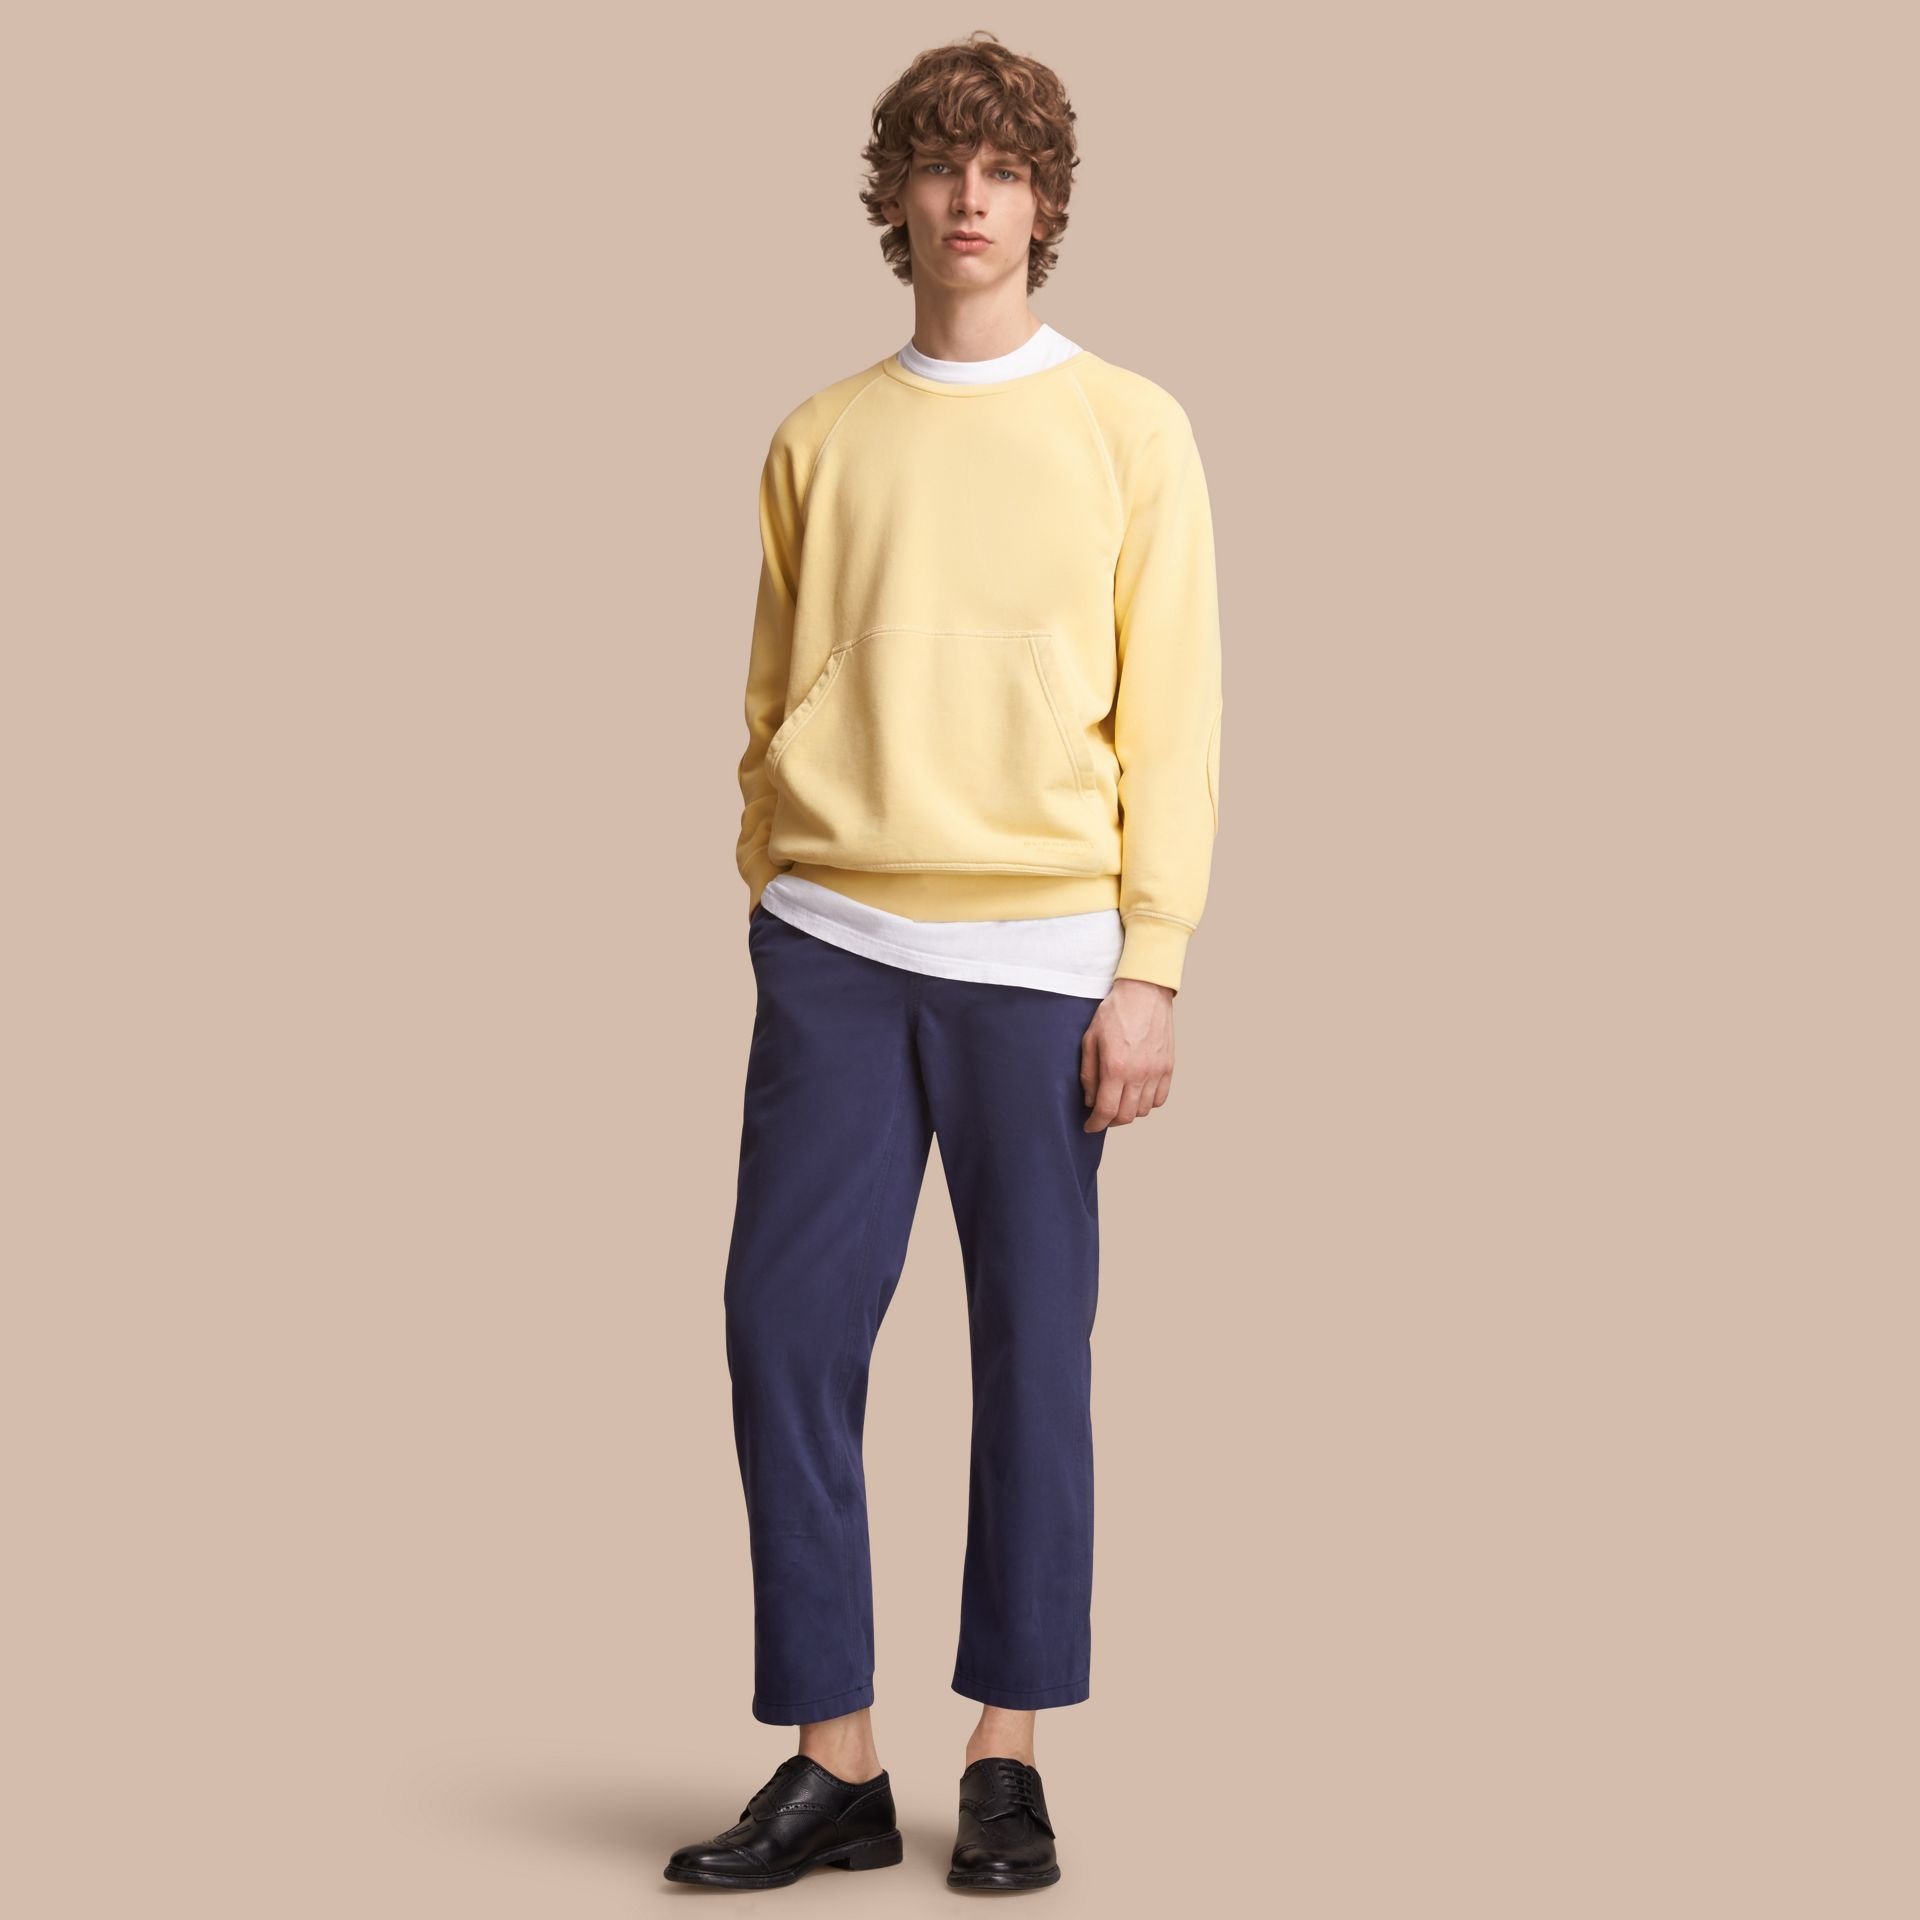 Unisex Pigment-dyed Cotton Oversize Sweatshirt in Pale Yellow - Men | Burberry Hong Kong - gallery image 1